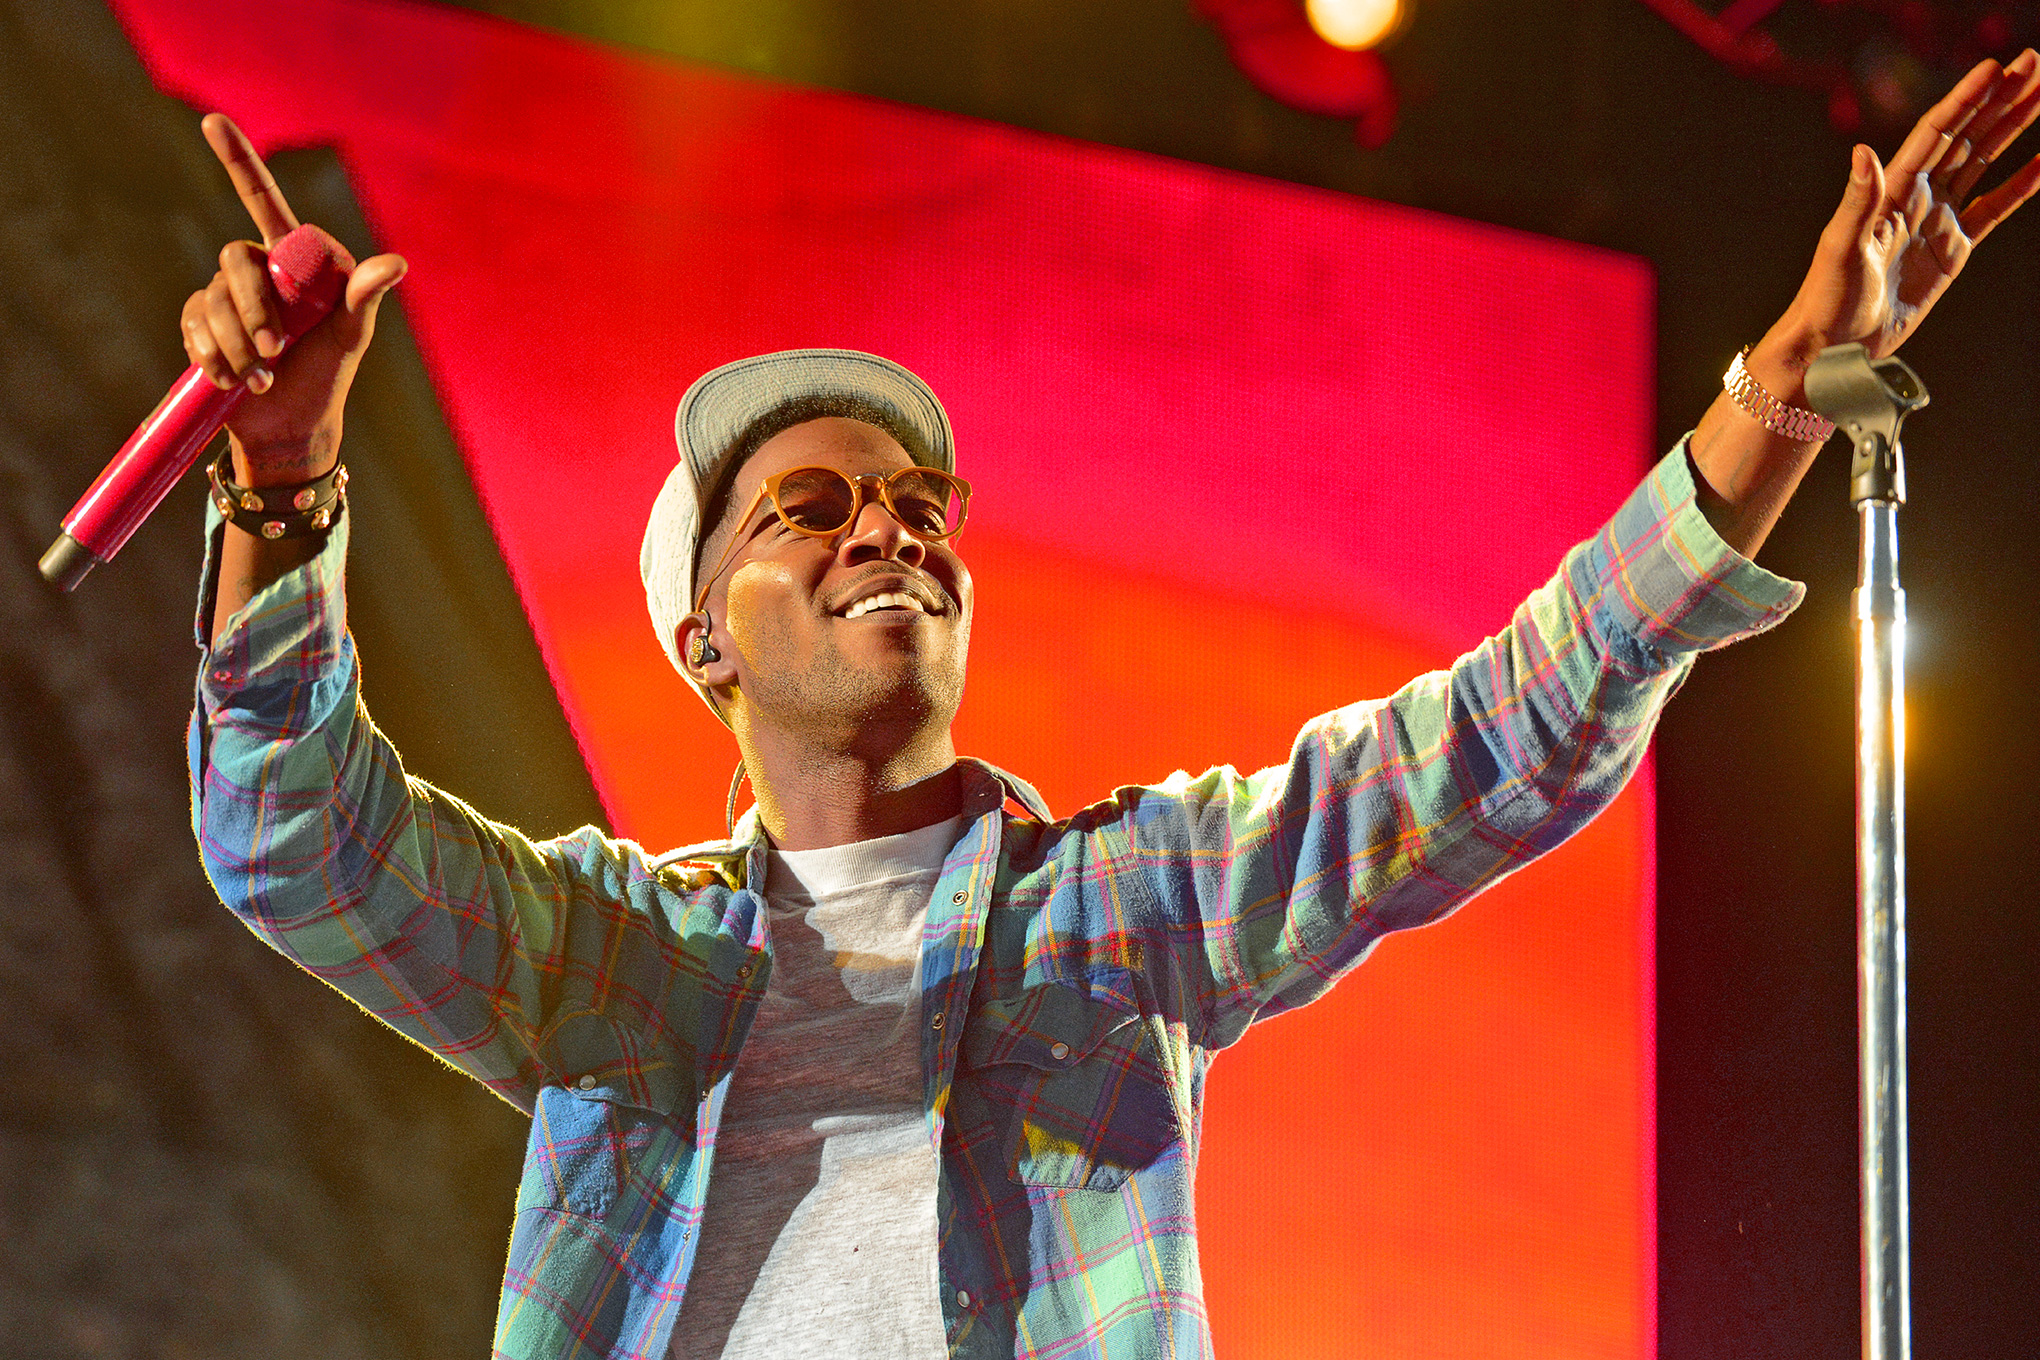 Kid Cudi Wallpapers High Resolution and Quality Download